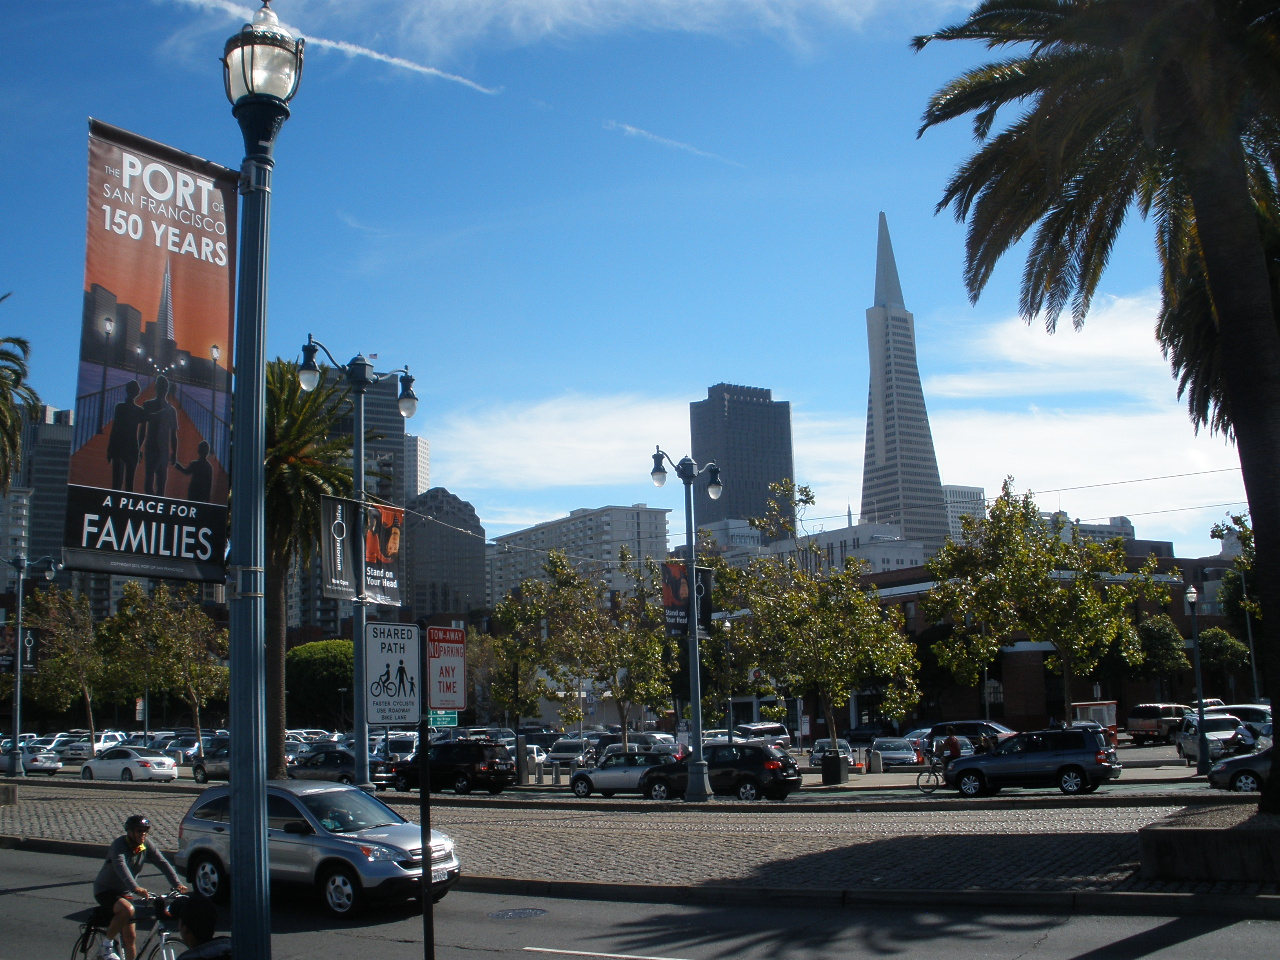 Embarcadero view with Transamerica Building